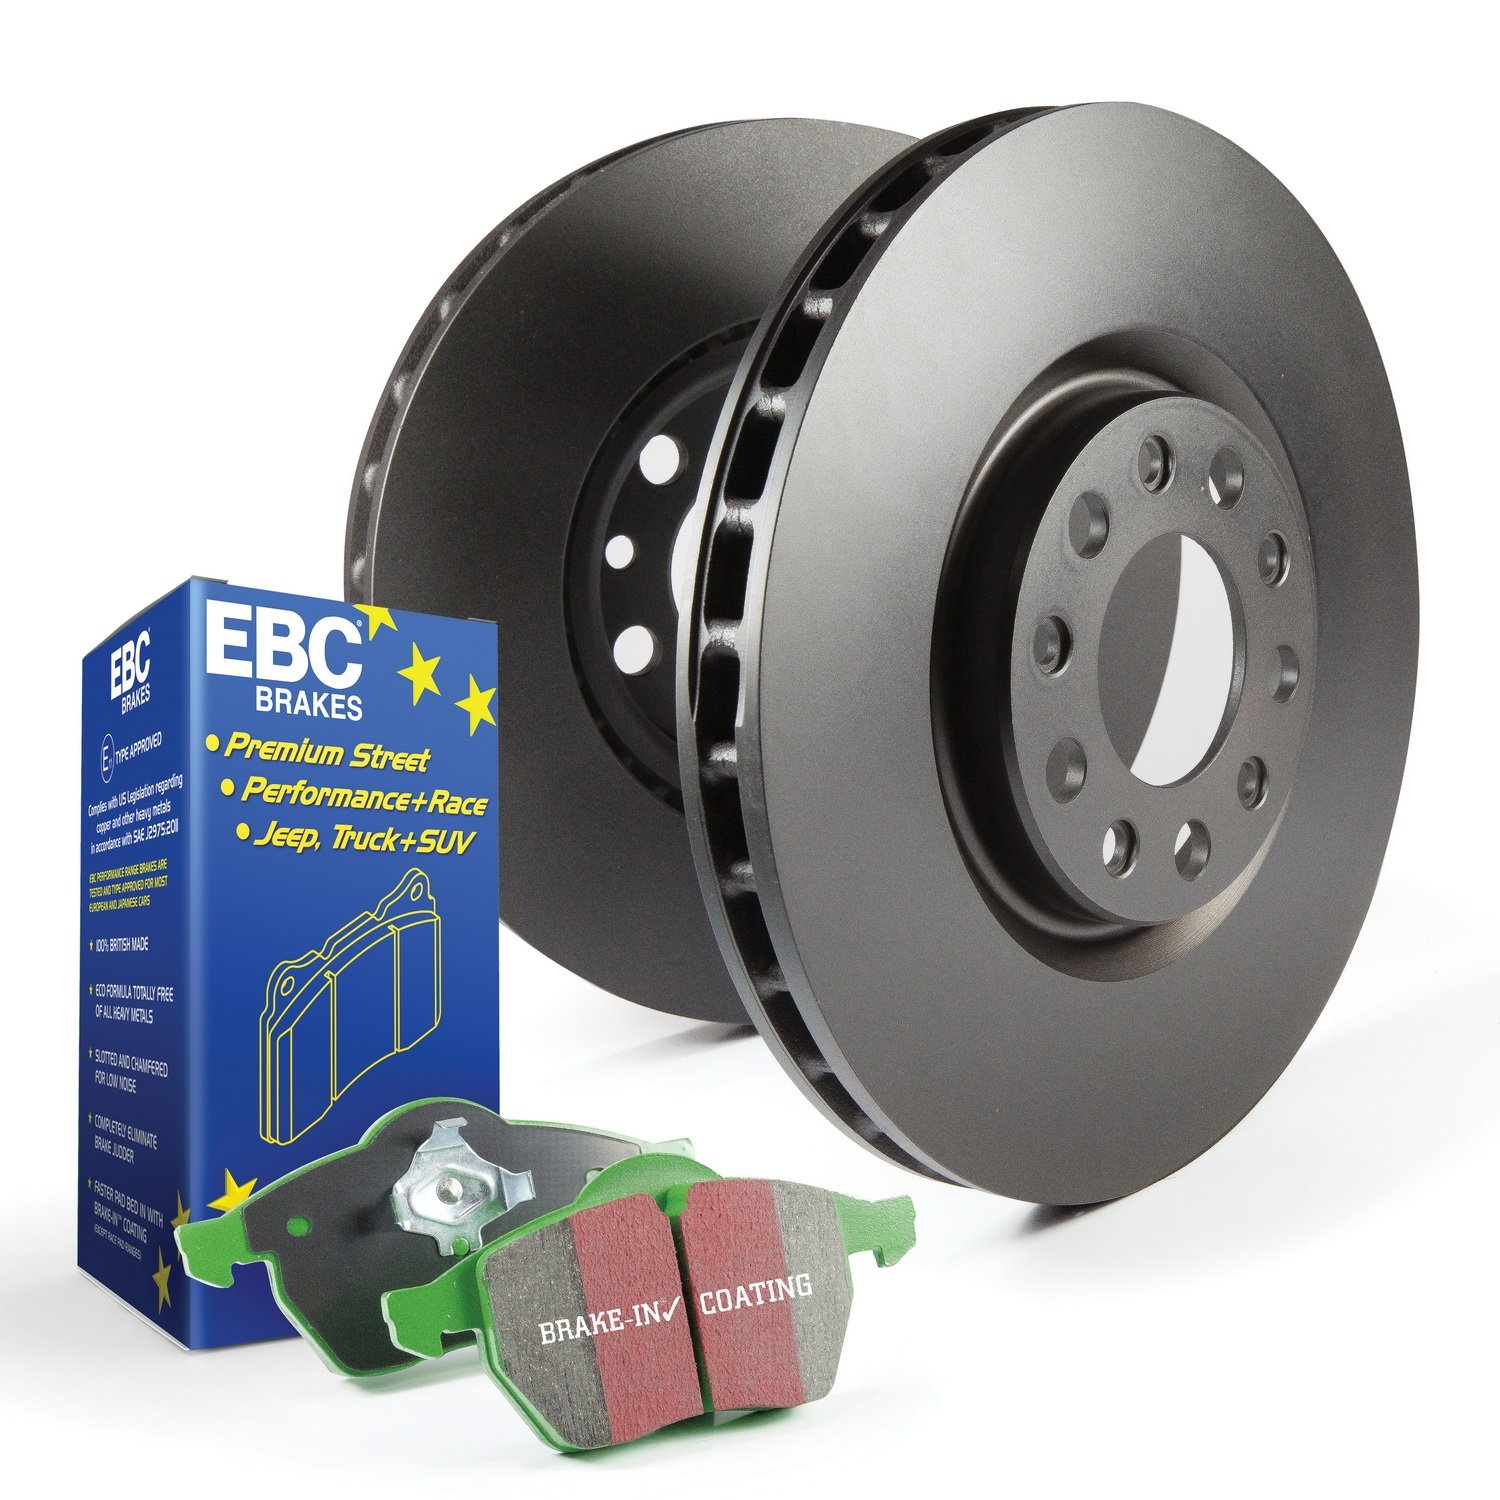 EBC Brakes S11KR1116 S11 Rear Kits Greenstuff 2000 and RK Rotors